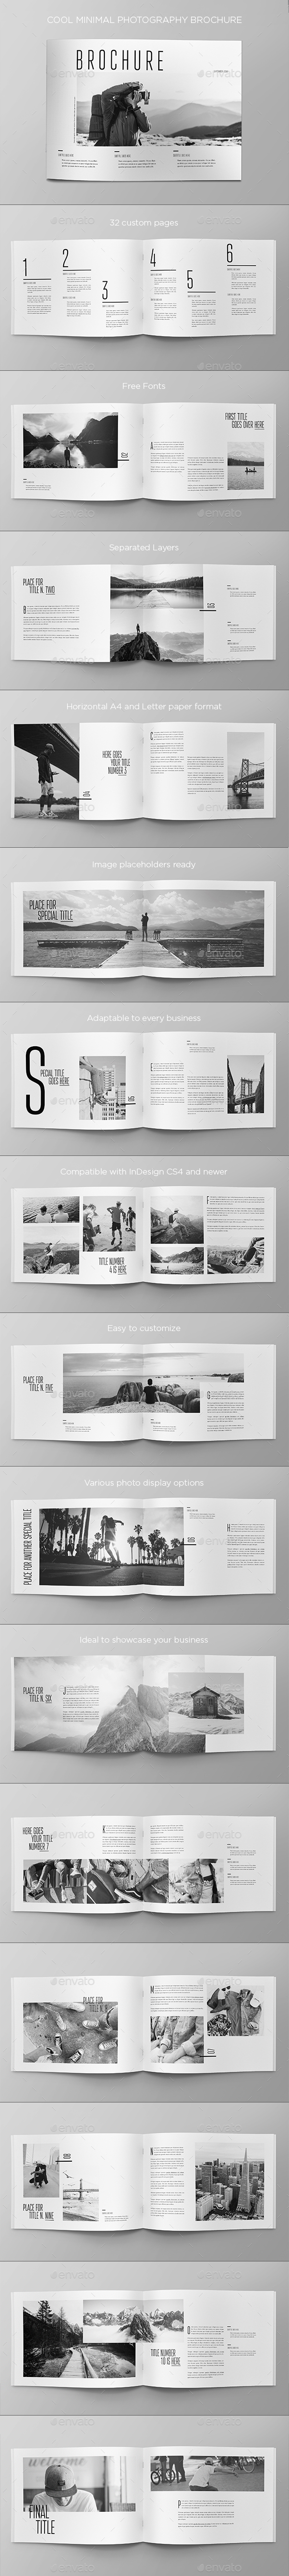 Cool Minimal Photography Brochure - Brochures Print Templates